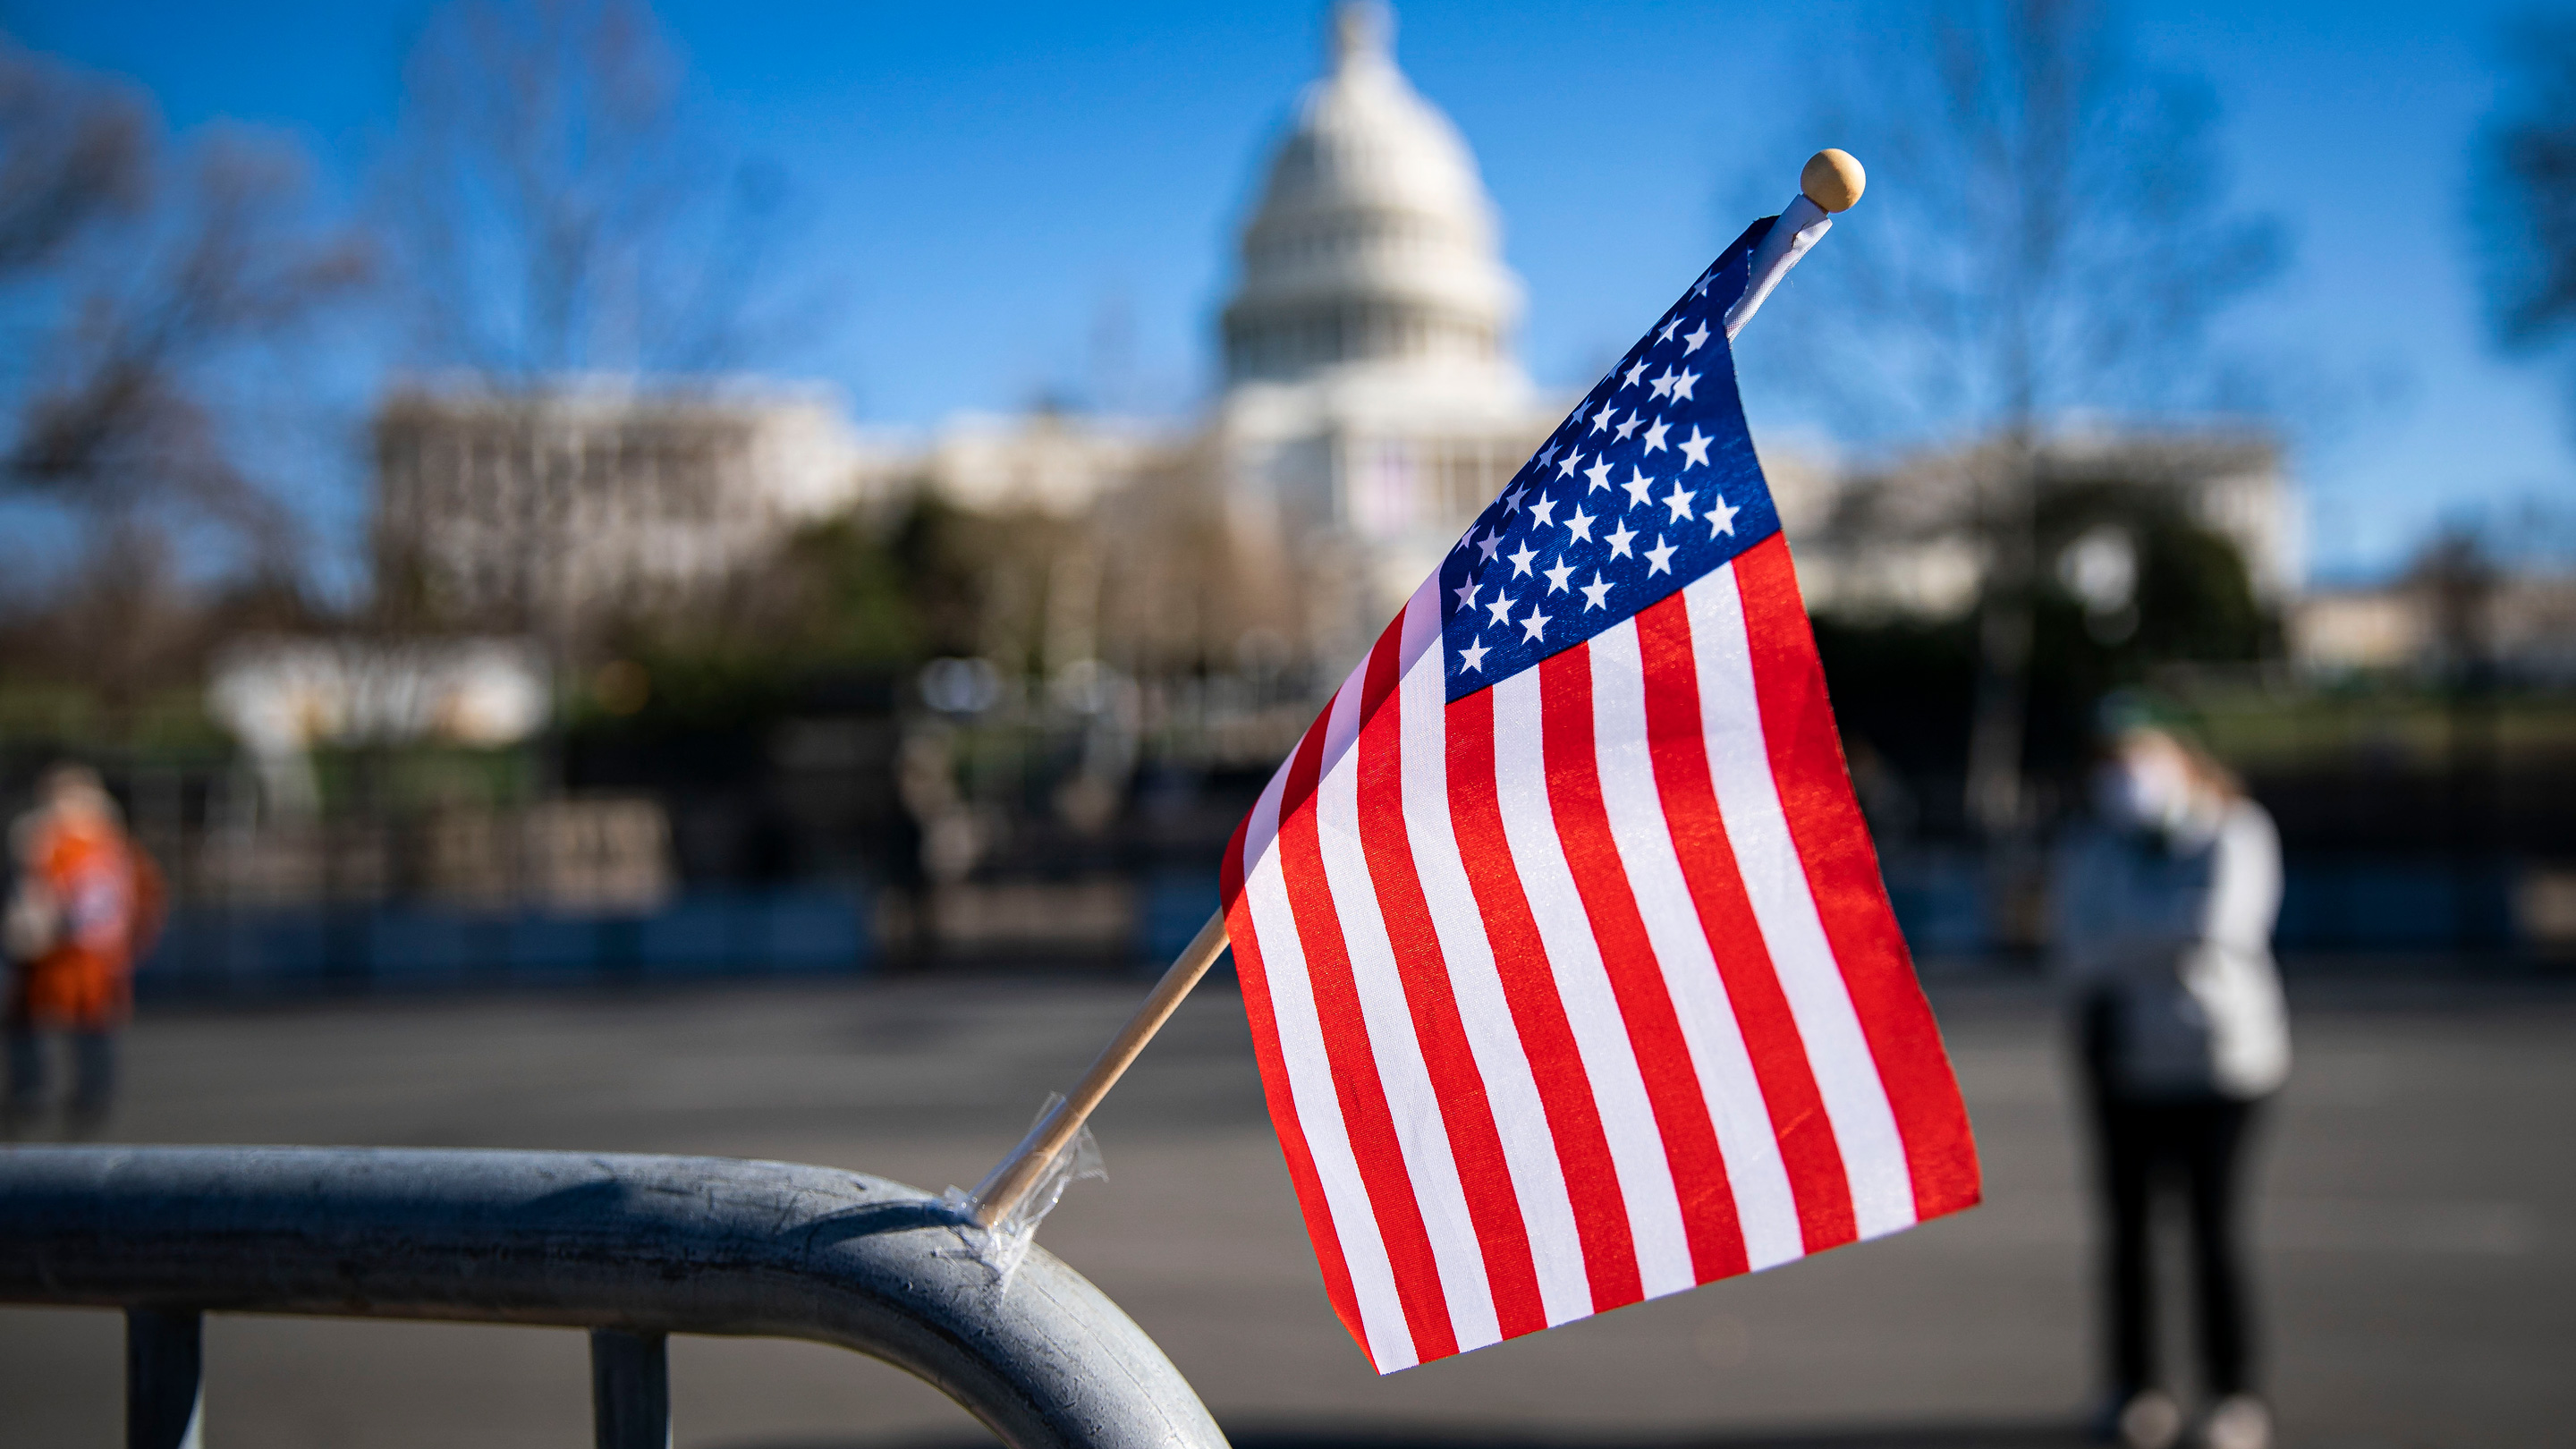 How many U.S. flags are made in the U.S.? - Marketplace